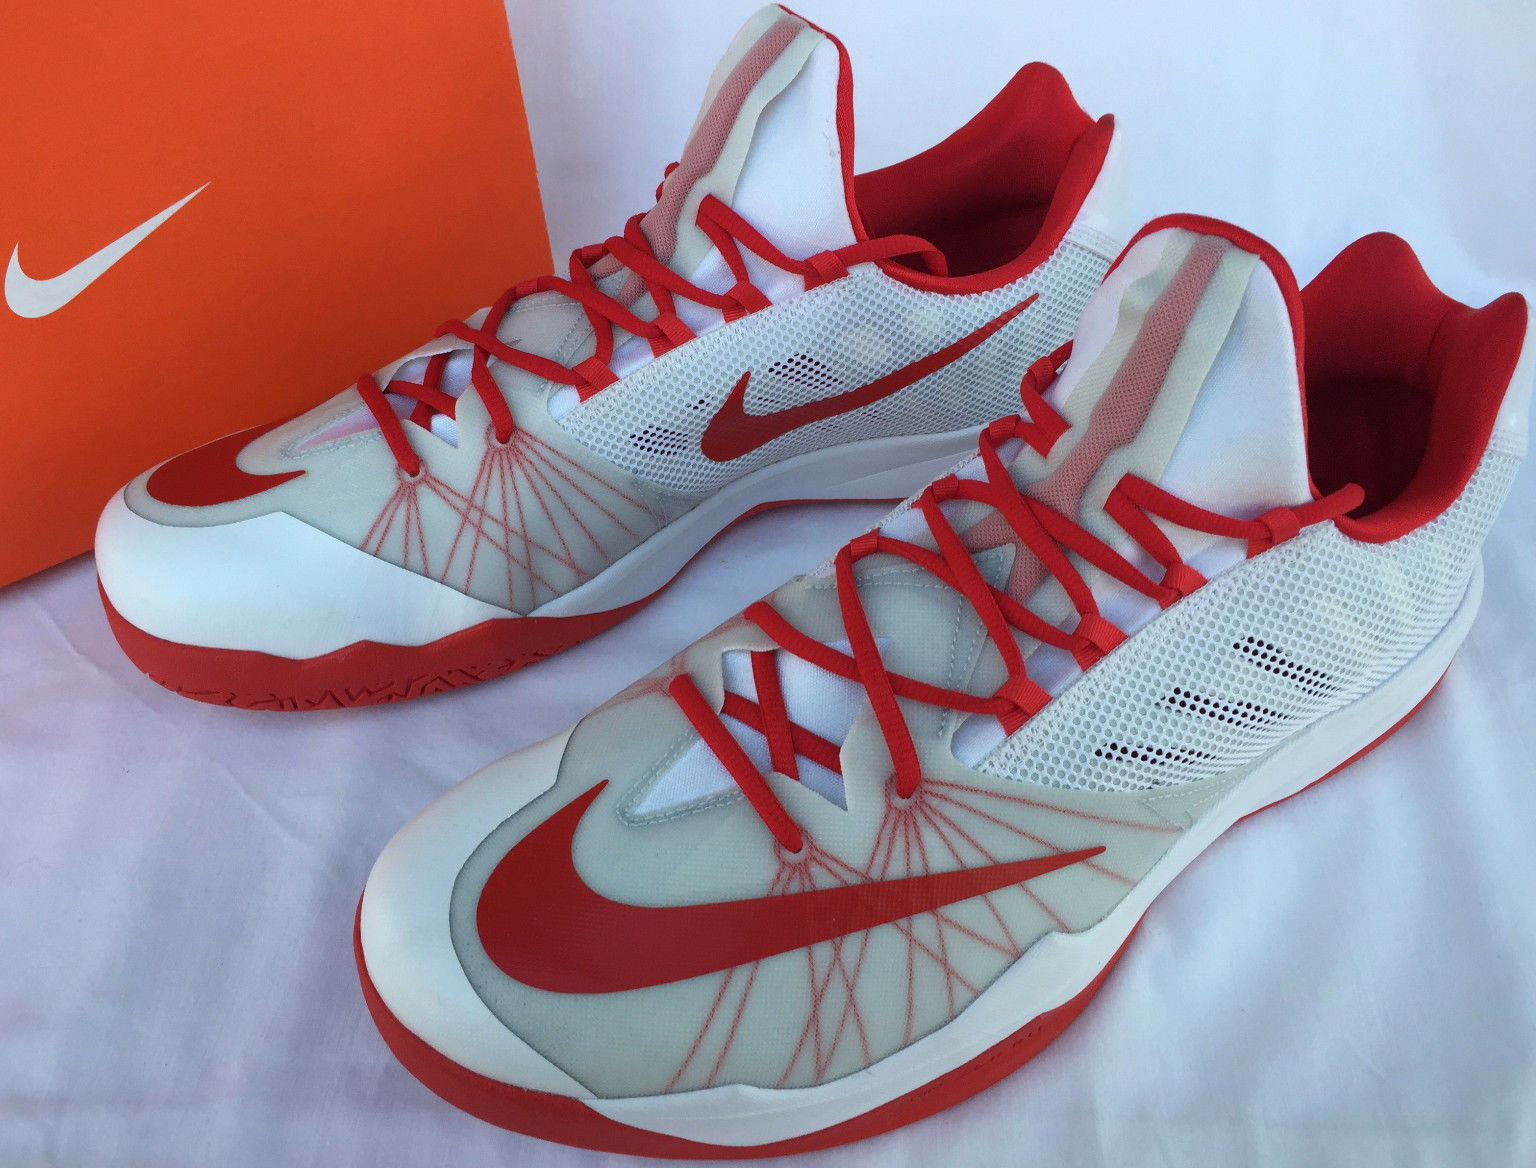 Nike Zoom Run The One Sample 2018 PE 685779-161 NCAA Basketball Shoes Men's 17